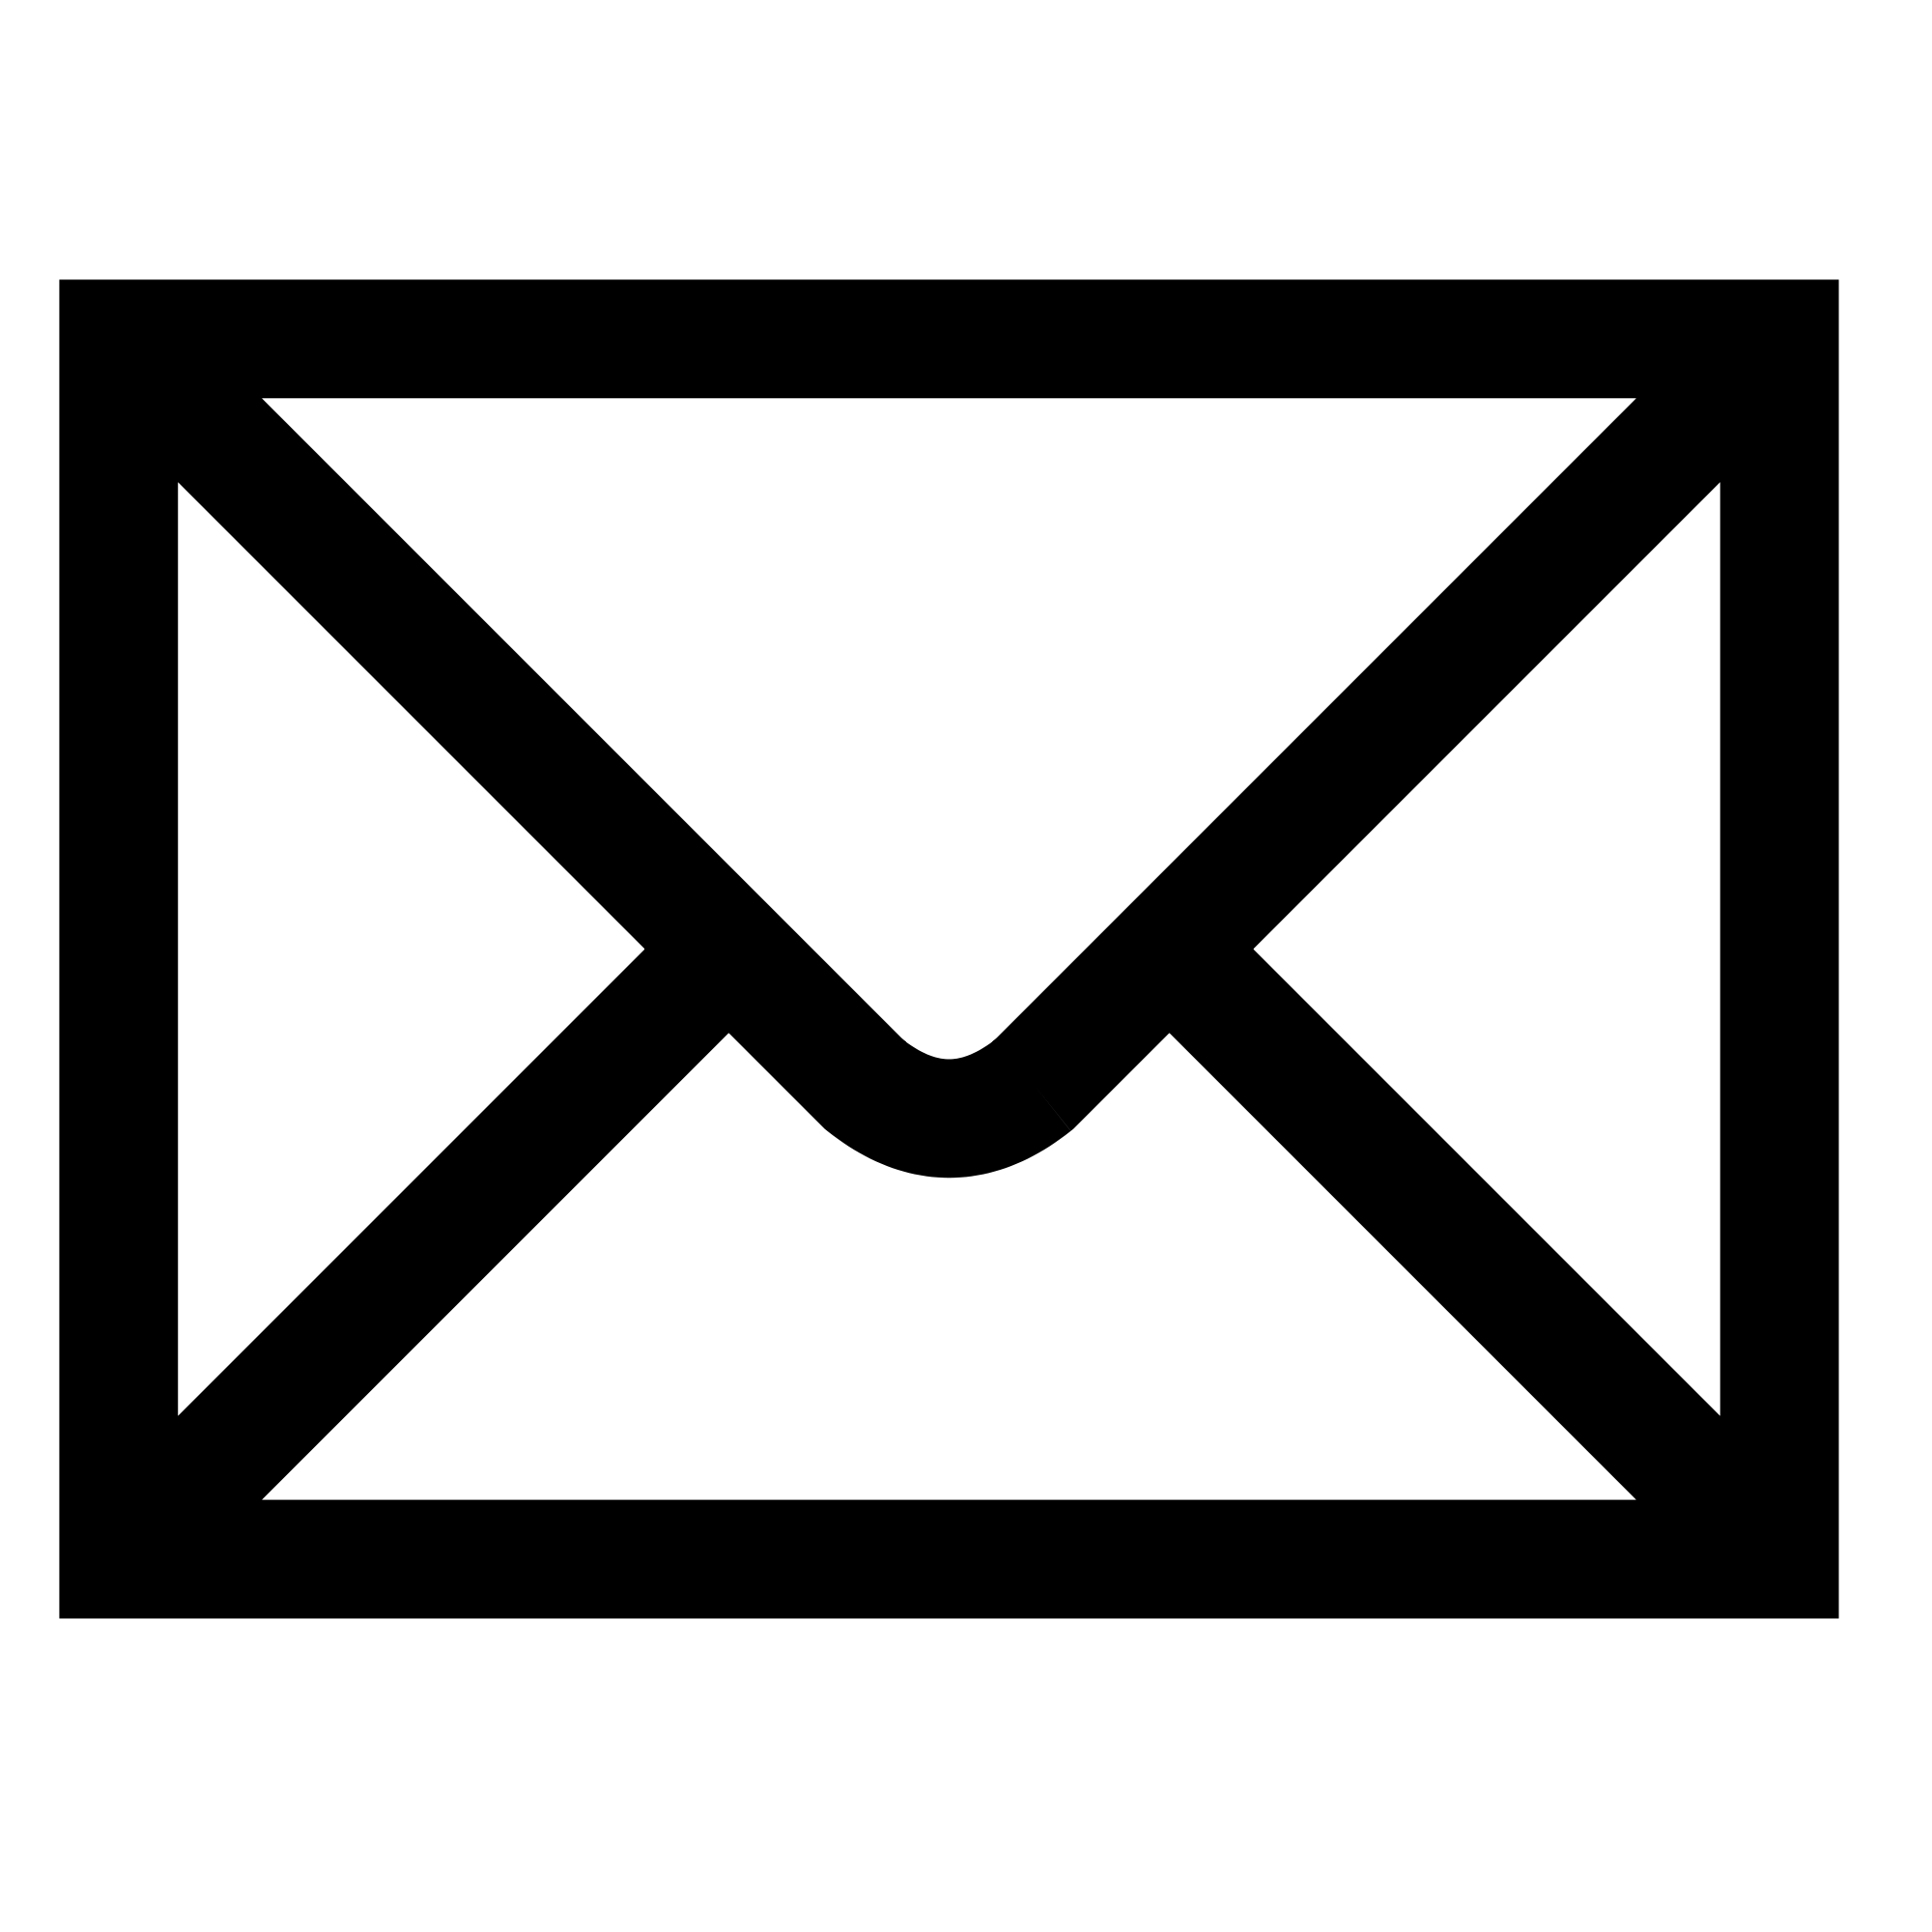 email-logo-png-27png